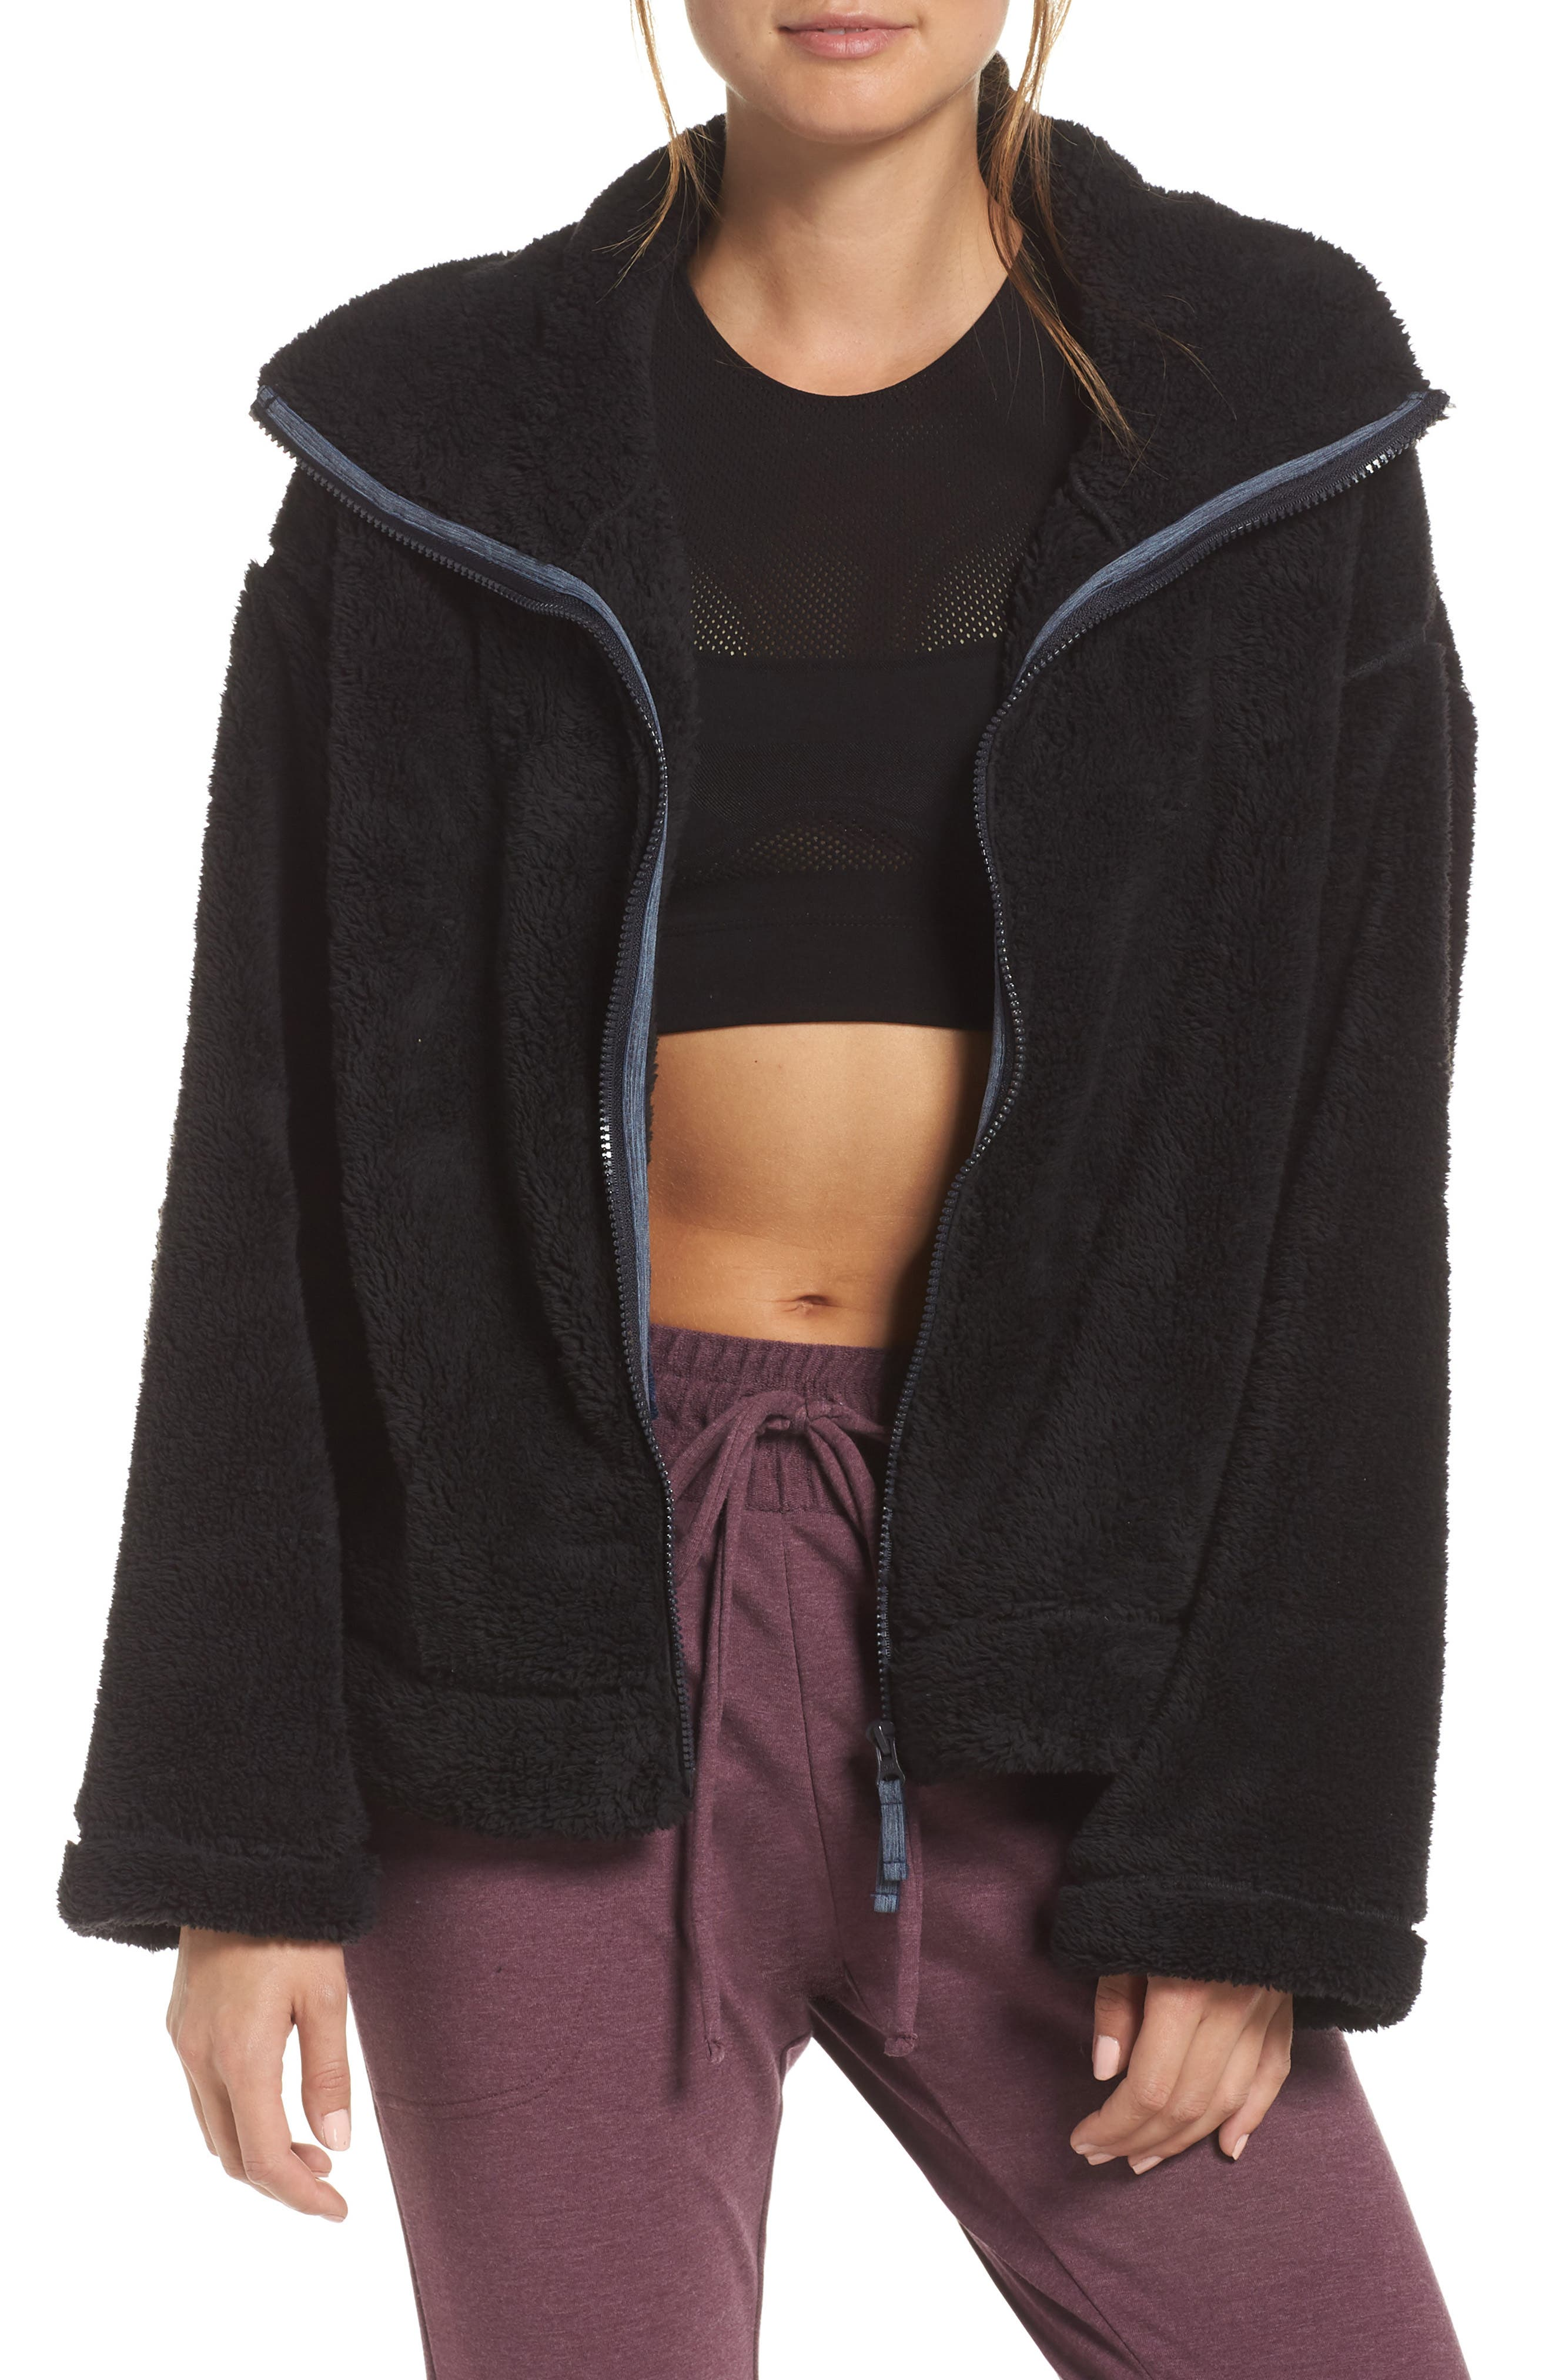 Dazed Fleece Jacket,                         Main,                         color, BLACK